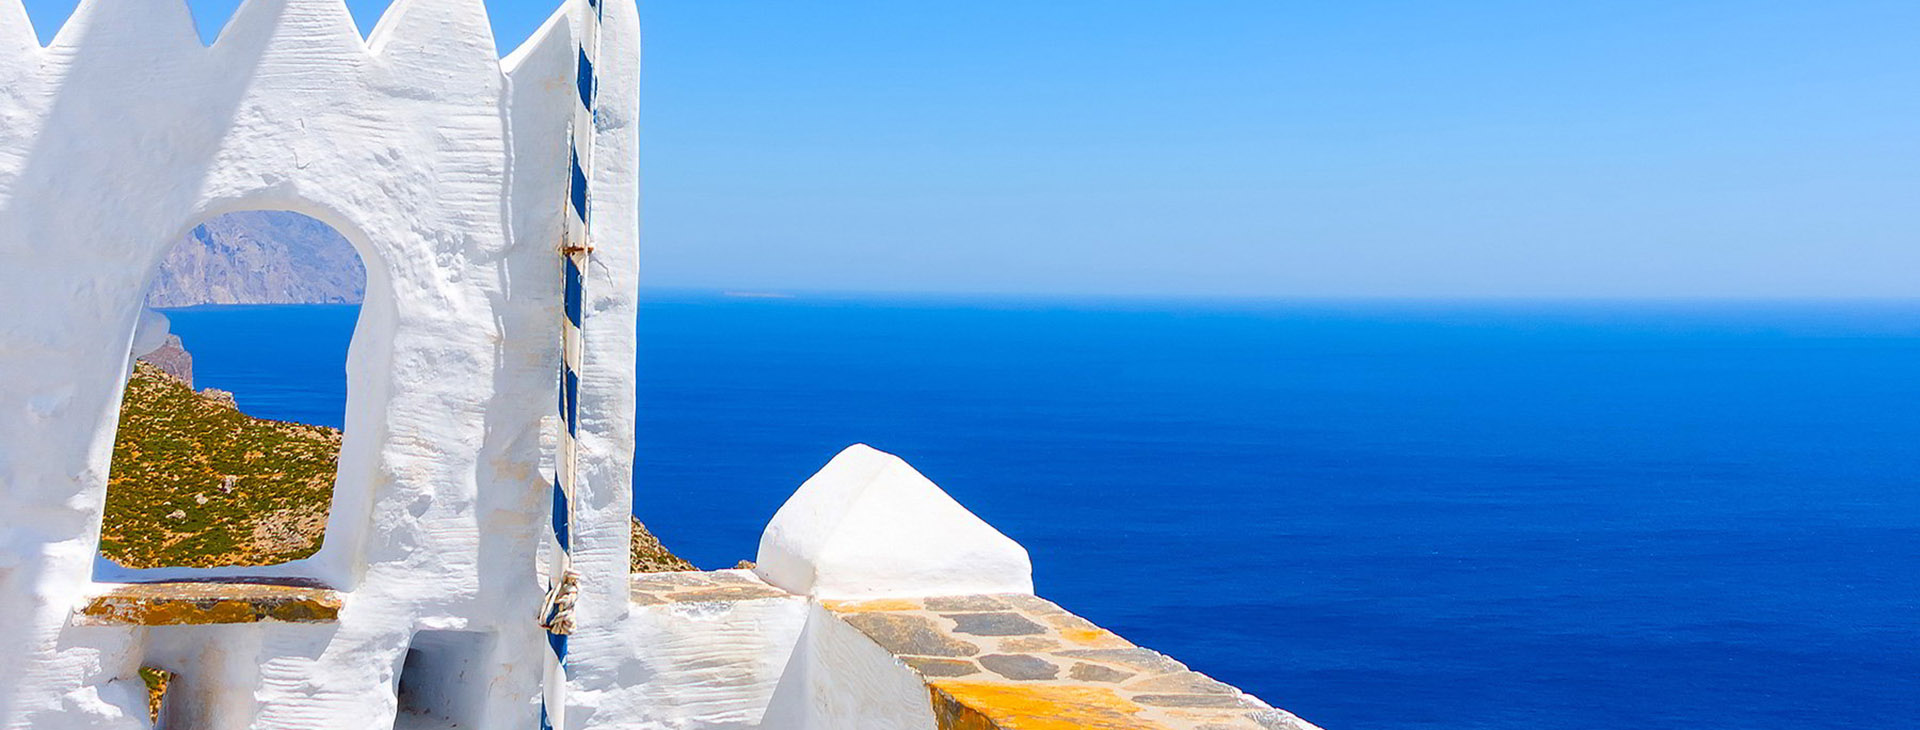 View of the Aegean Sea from the Monastery of Hozoviotissa, Amorgos island